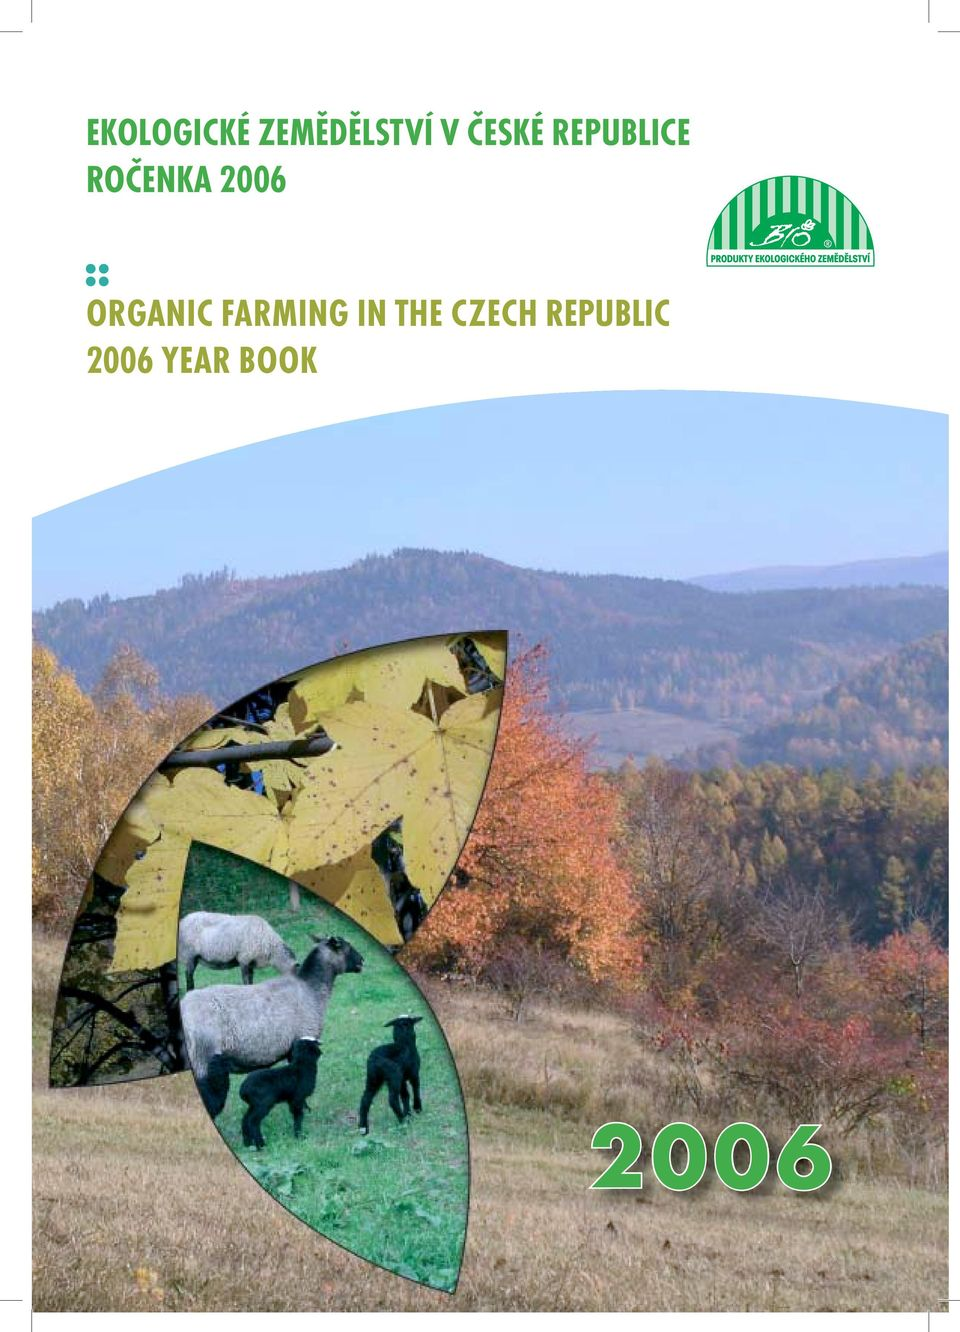 2006 ORGANIC FARMING IN THE